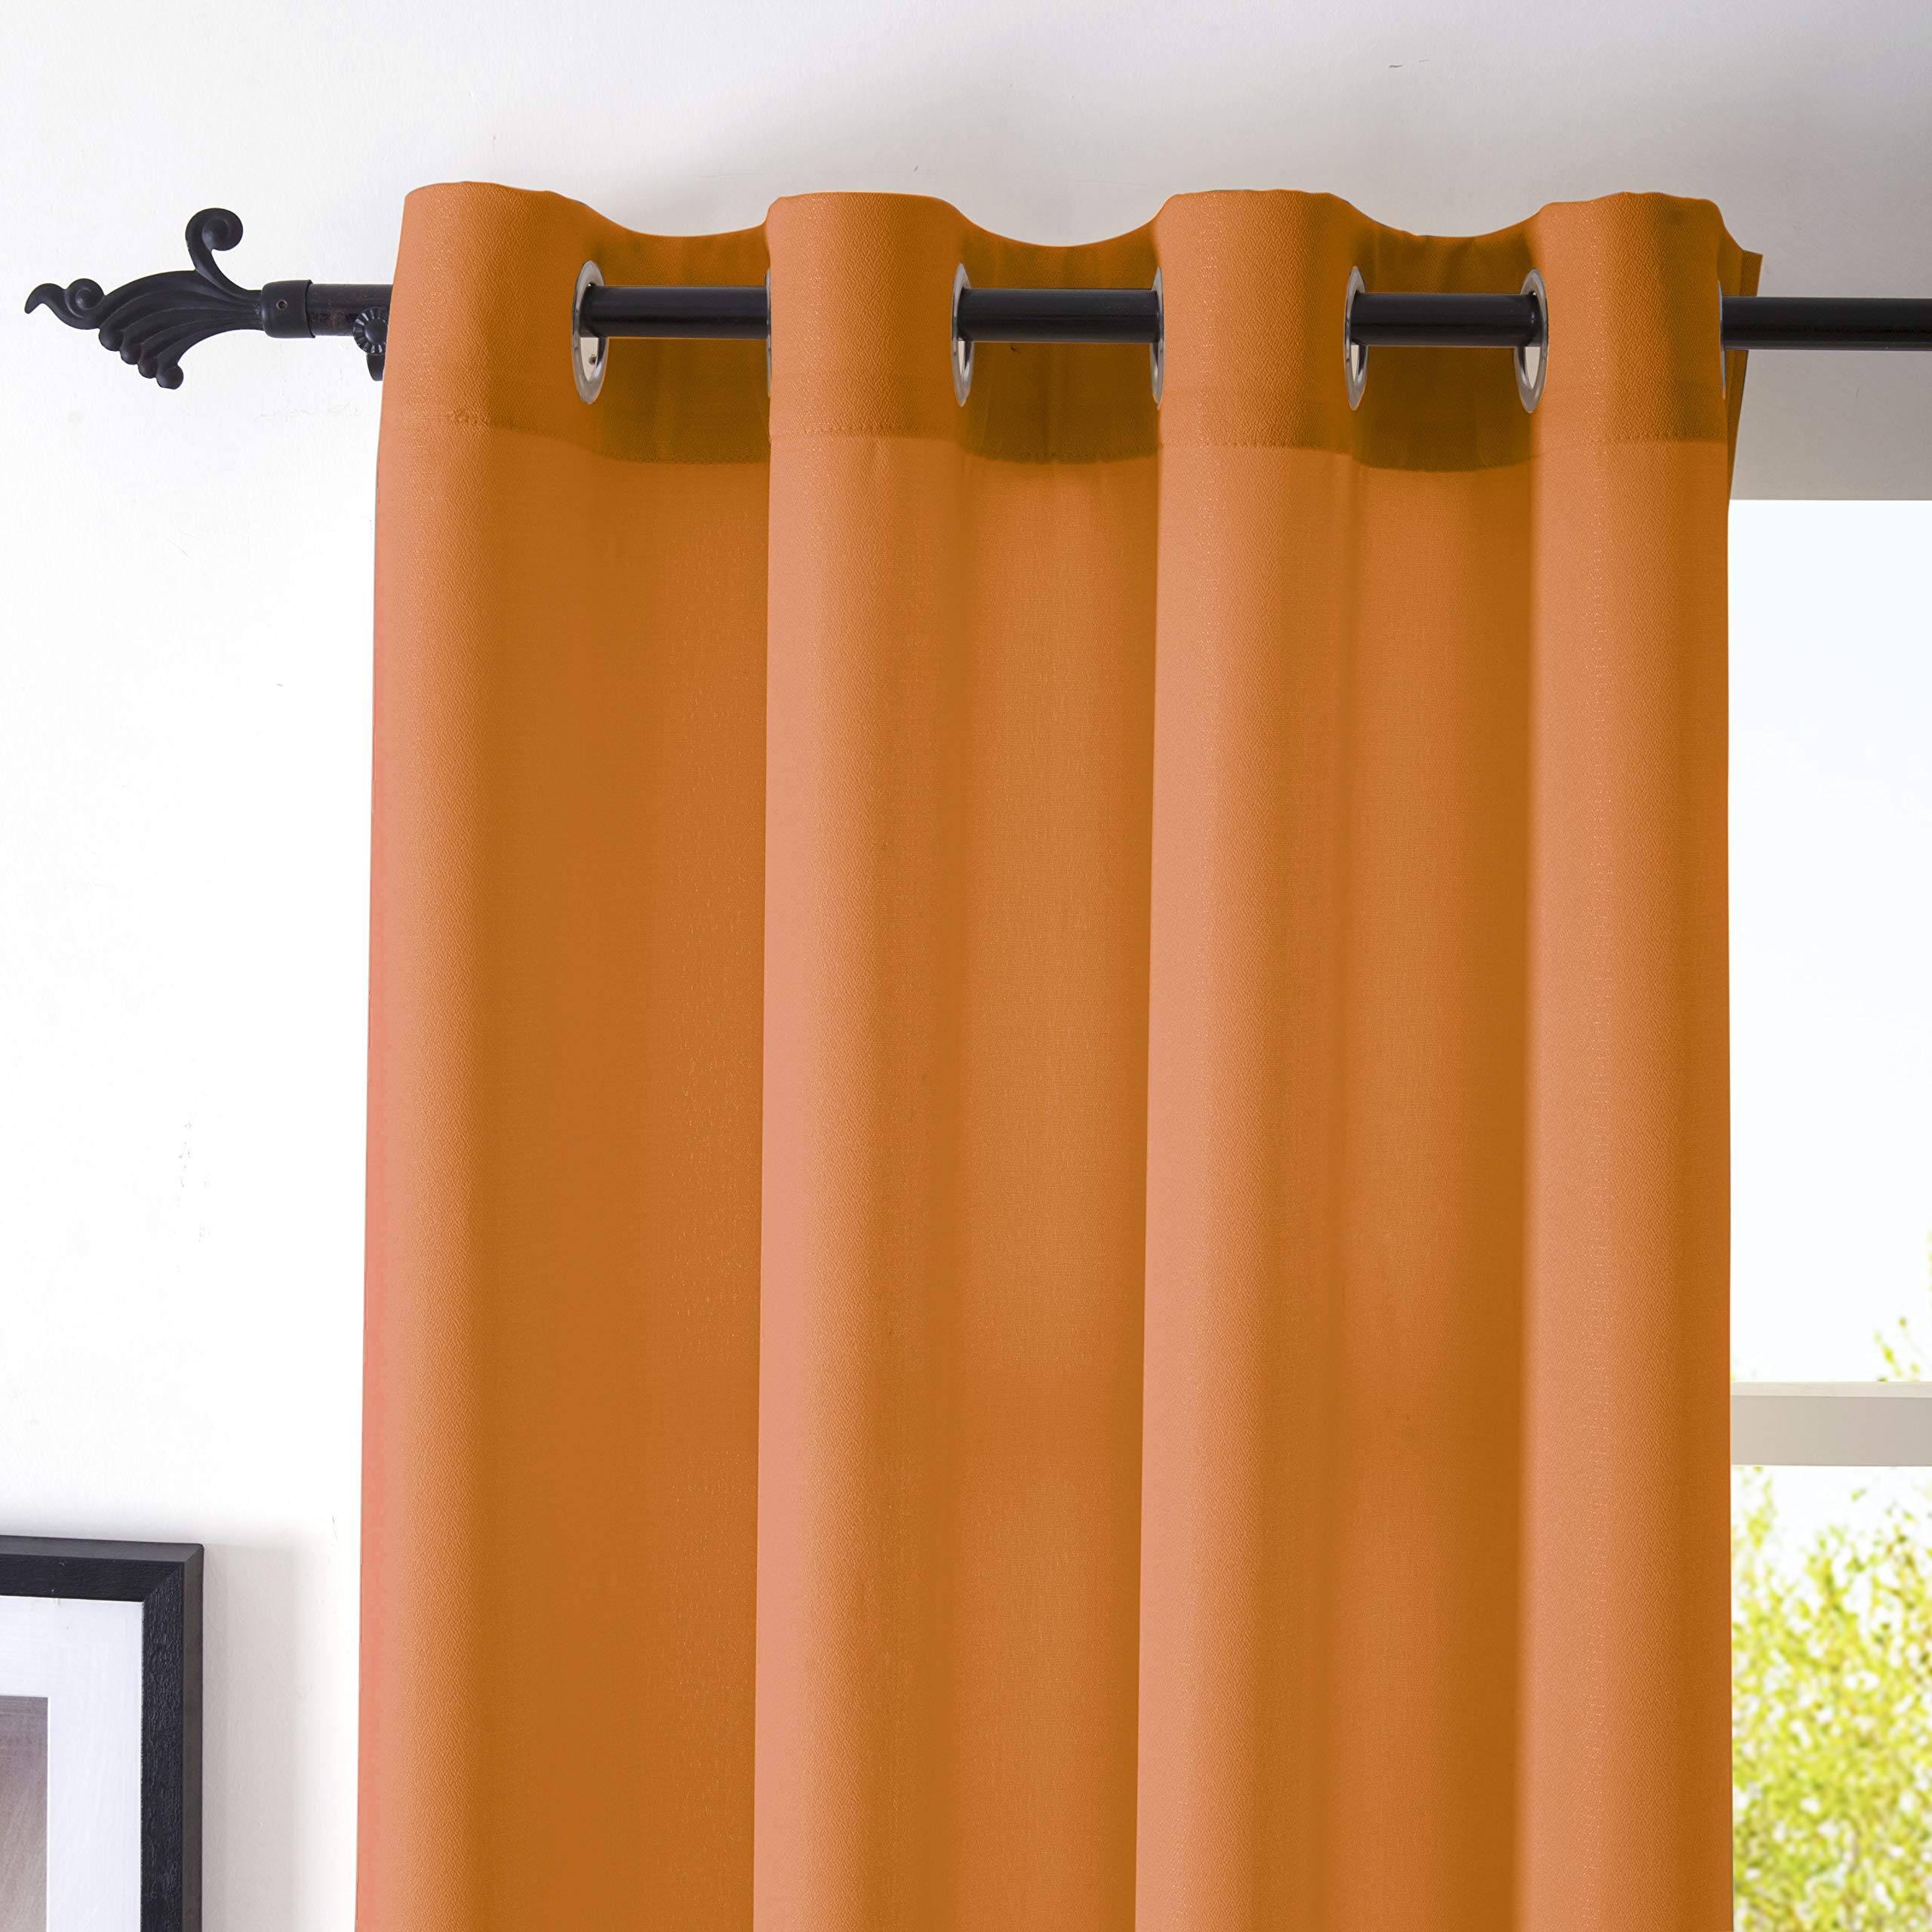 DWCN Semi Sheer Curtains Sunlight Filtering Country Modern Style Draperies 8 Grommets Window Orange Curtain 52x63 inch Long Set of 2 Faux Linen Panels for Living Room by DWCN (Image #3)